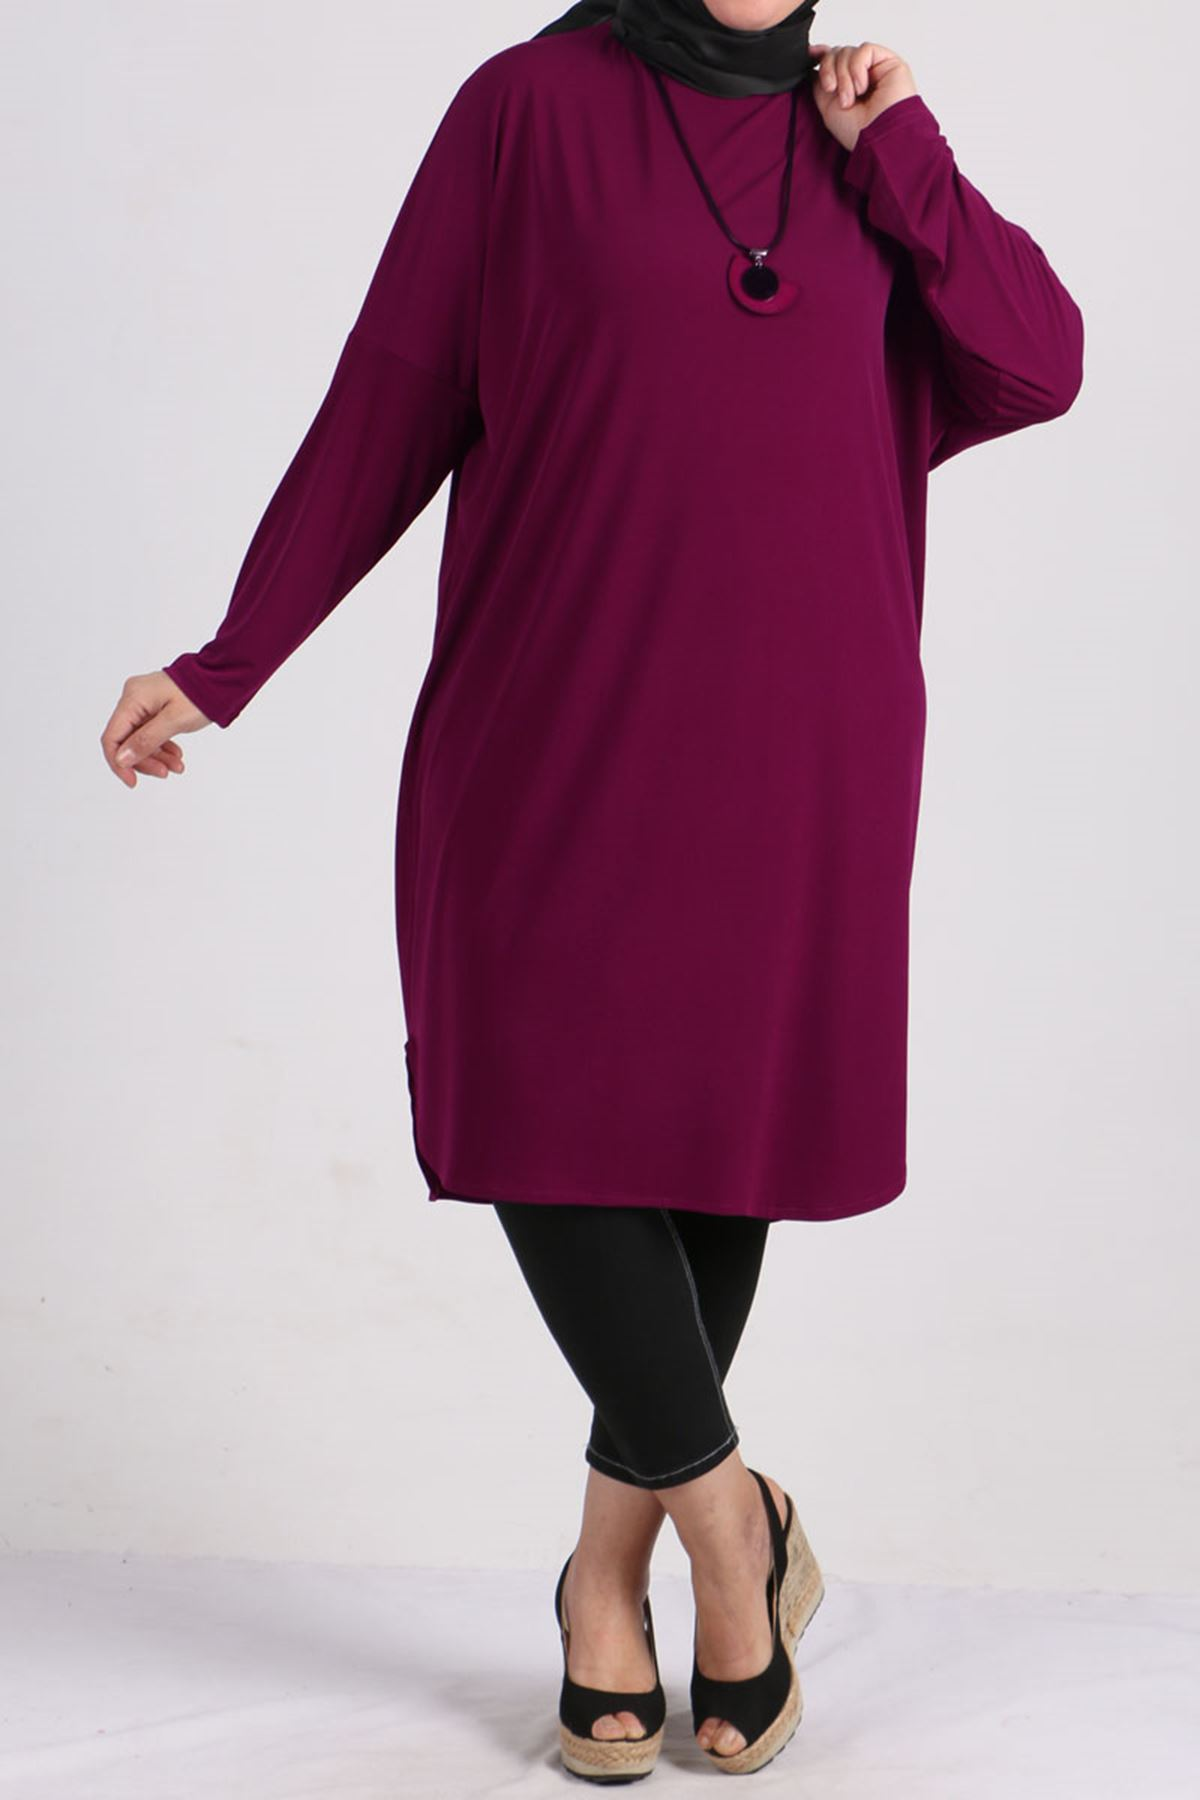 8459 Oversize with Low Sleeve Tunic - Plum